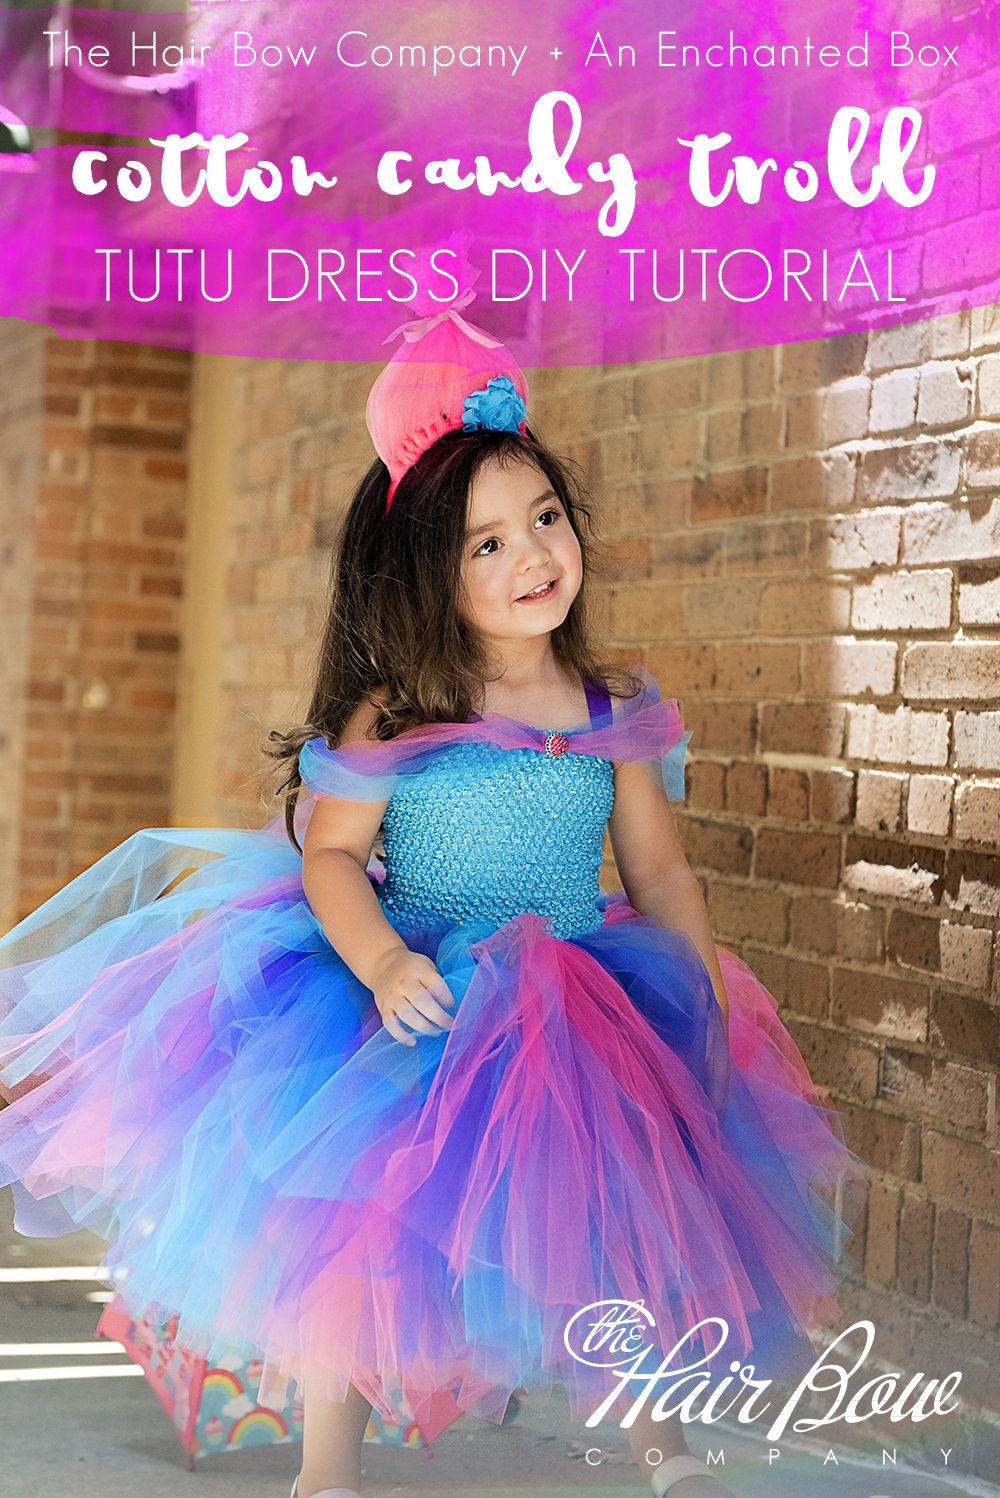 Cotton candy troll tutu dress diy the hair bow company diy cotton candy troll tutu dress solutioingenieria Images